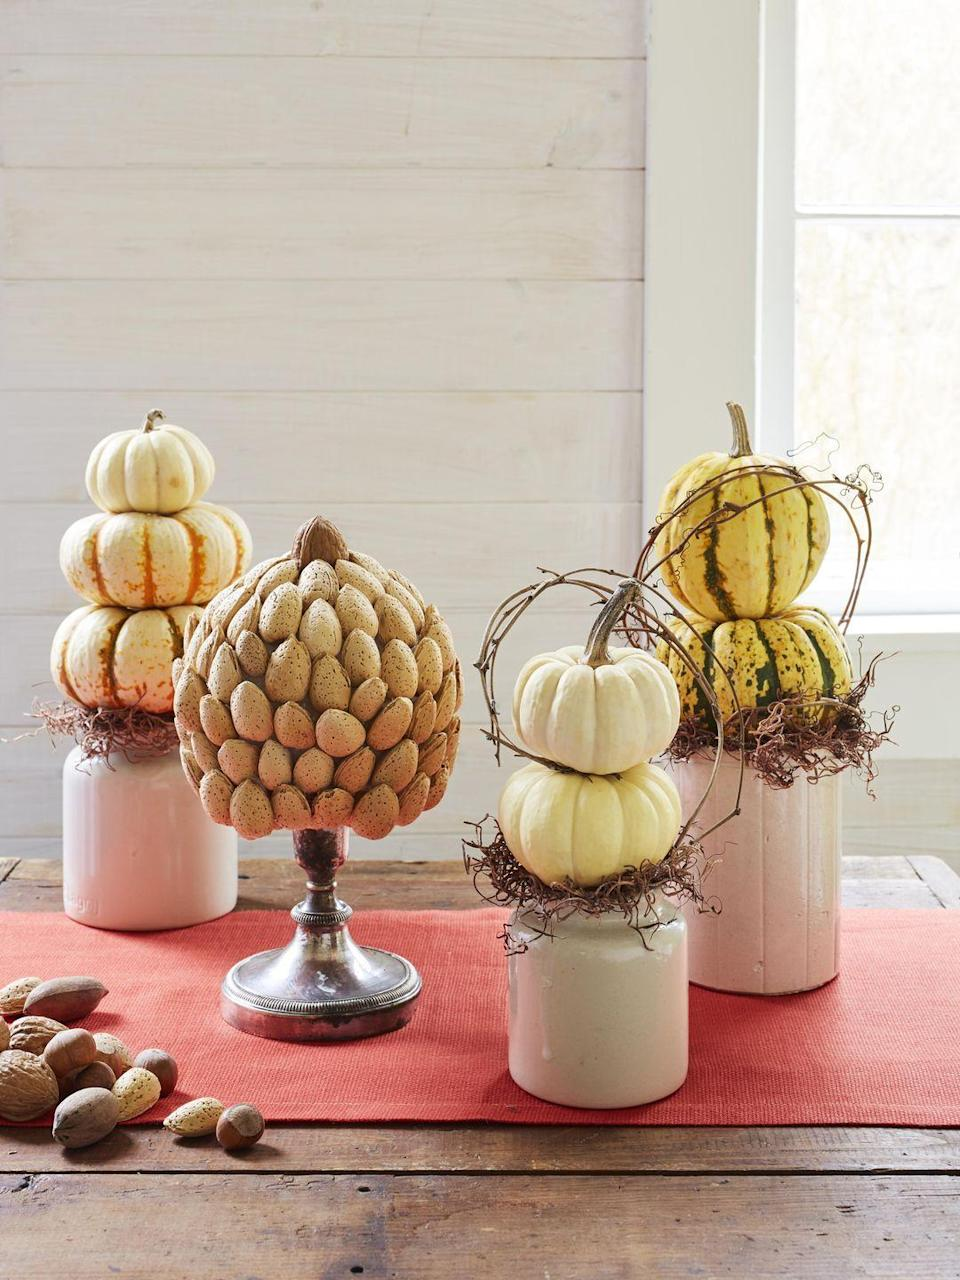 <p>Create a grouping of these tabletop topiaries to display as a centerpiece or on a buffet. <strong><br></strong></p><p><strong>Make the nut topiaries:</strong> Lightly spray styrofoam craft balls with brown paint. Once dry, hot glue nuts to styrofoam balls in an orderly pattern, as shown. For the walnut topiary, start with a middle equator row and add rows up and down from there. Add hazelnuts to fill any gaps. For the raw almond topiary, start at the top and work your way down, gluing horizontal rows around the perimeter and overlapping slightly for full coverage. Leave space at bottom to rest on top of candlestick bases. Attach with hot glue, as needed.</p><p><strong>Make the pumpkin and squash topiaries:</strong> Remove stems, except for the top pieces. Stack two pumpkins and secure using small wooden skewers or toothpicks. Skewer the bottom piece and place into crocks filled with floral foam. Cover foam with Spanish moss, and finish with grapevine accents.</p>